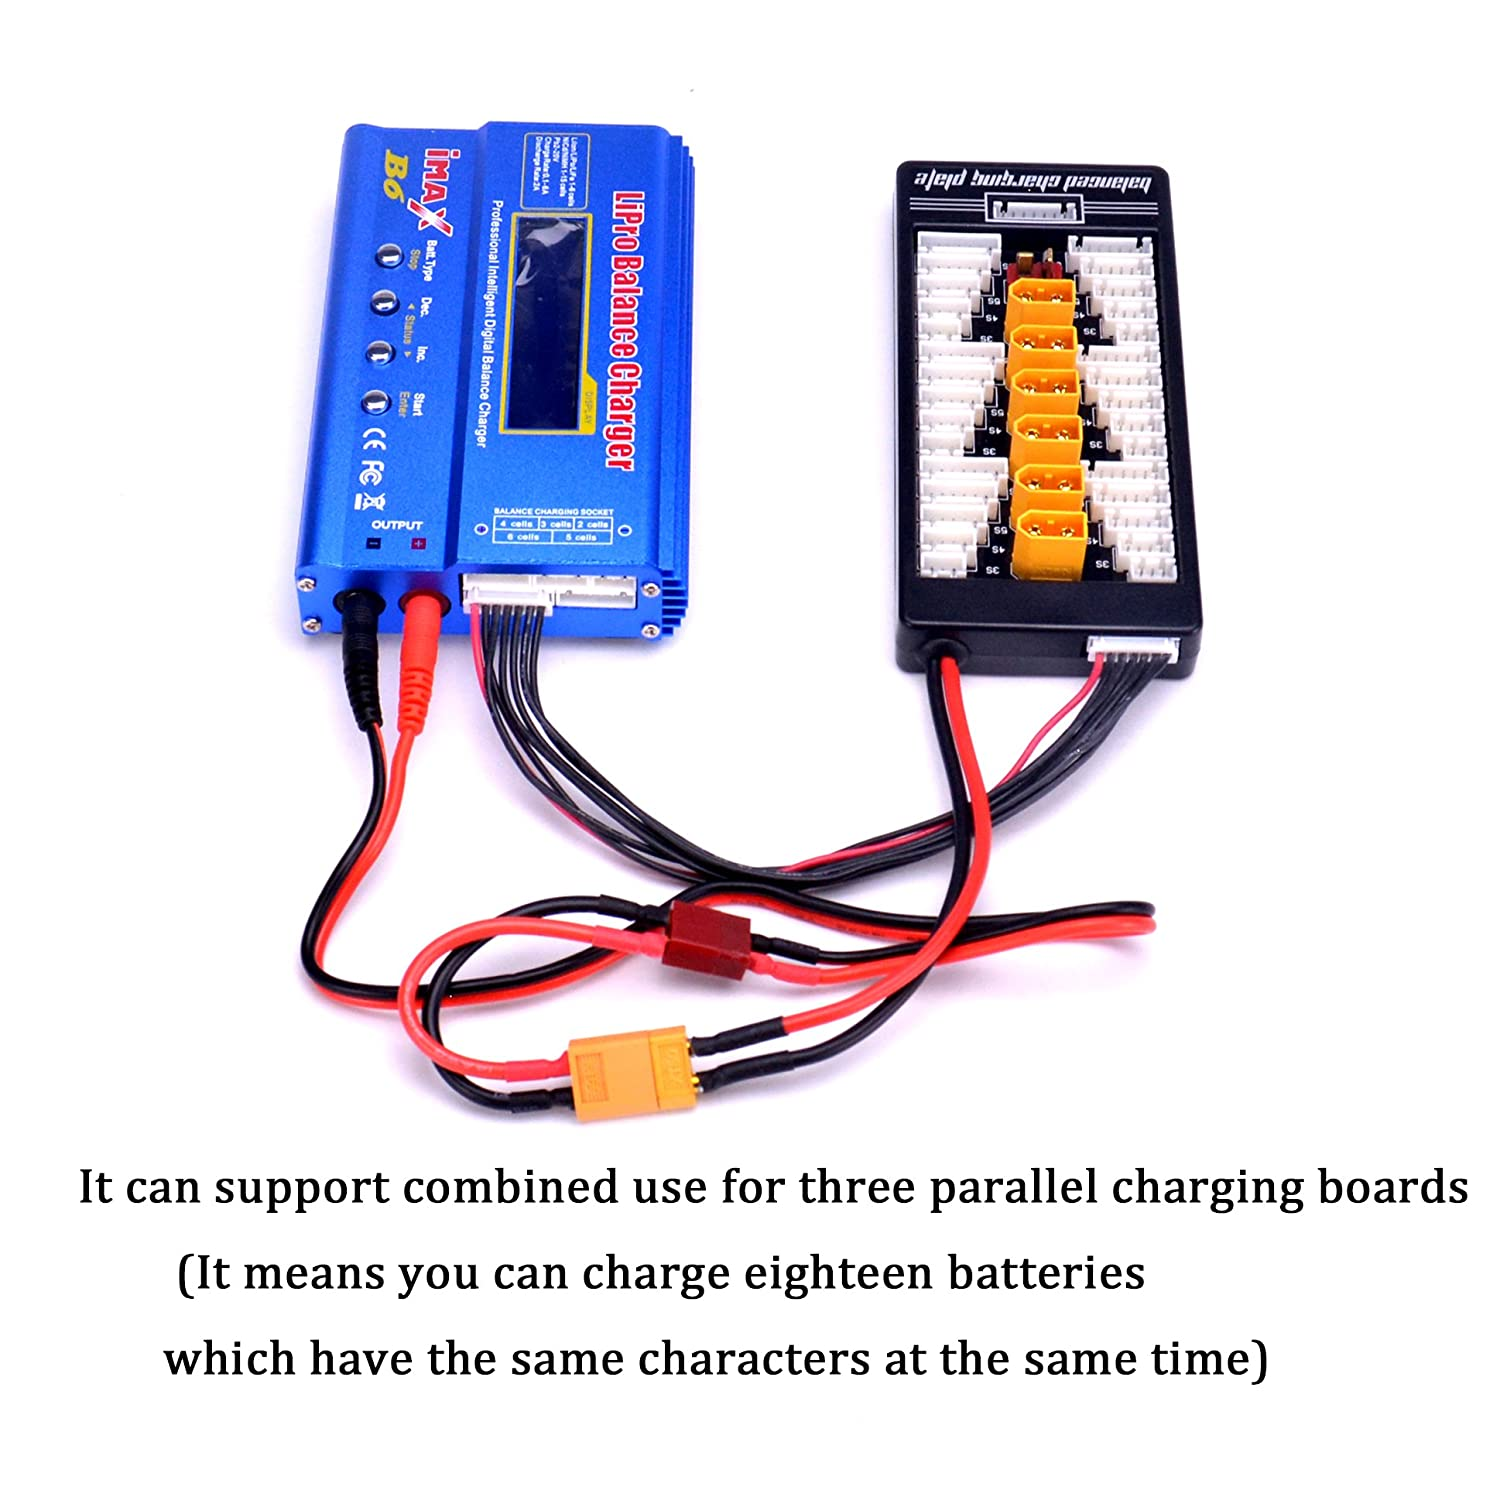 Fpvdrone Xt60 Lipo Battery Charger 2 6s Parallel Home Wiring In Series Or Along With Bank Balanced Charging Board Plate Expansion Plug For Imax B6 B6ac Cell